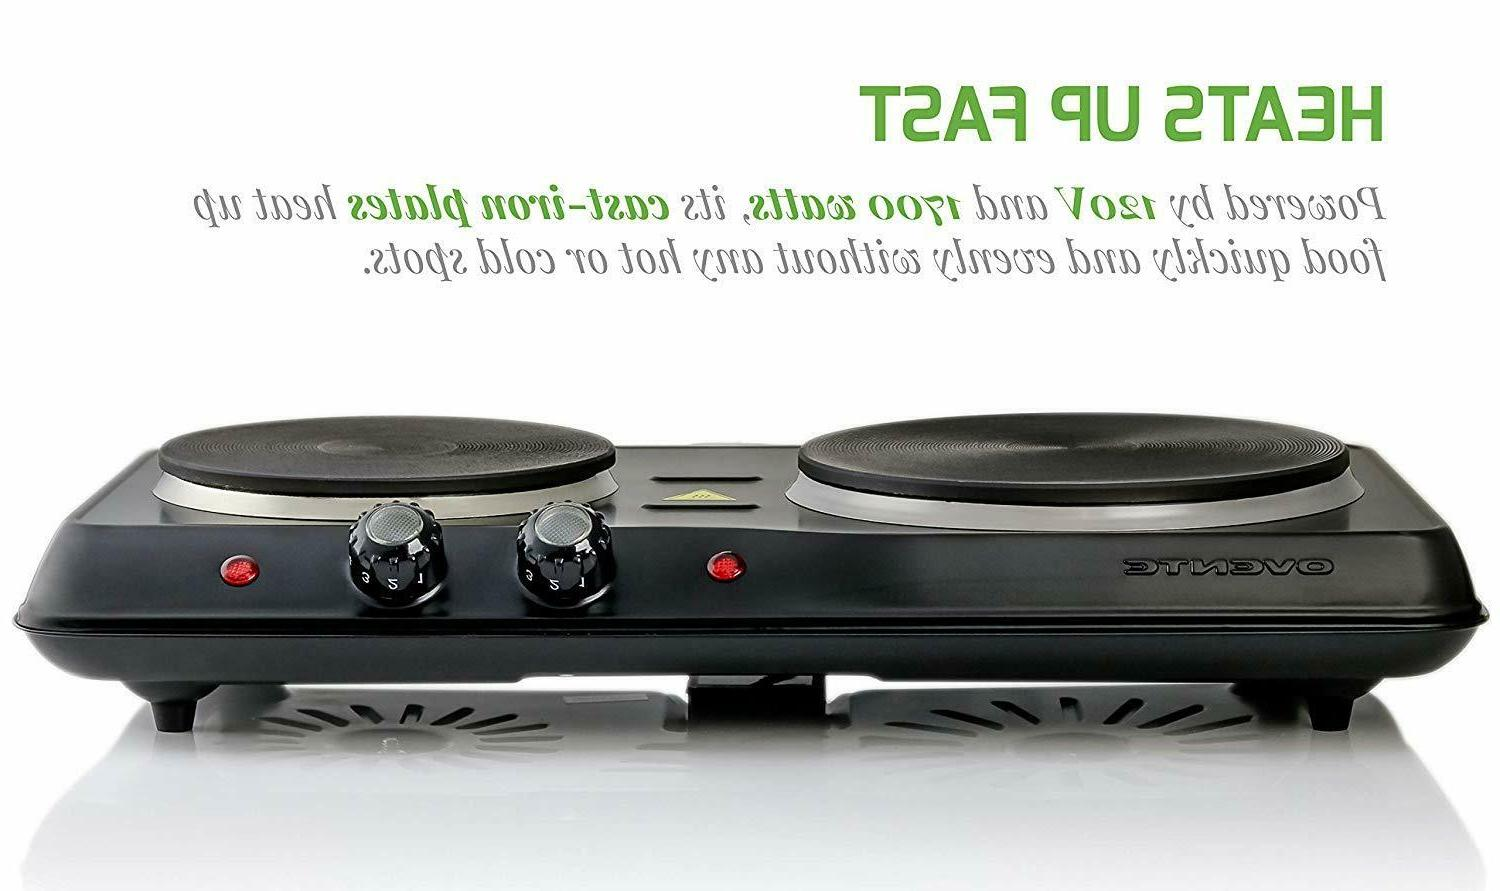 Ceramic Glass 2 Cooking Stove US